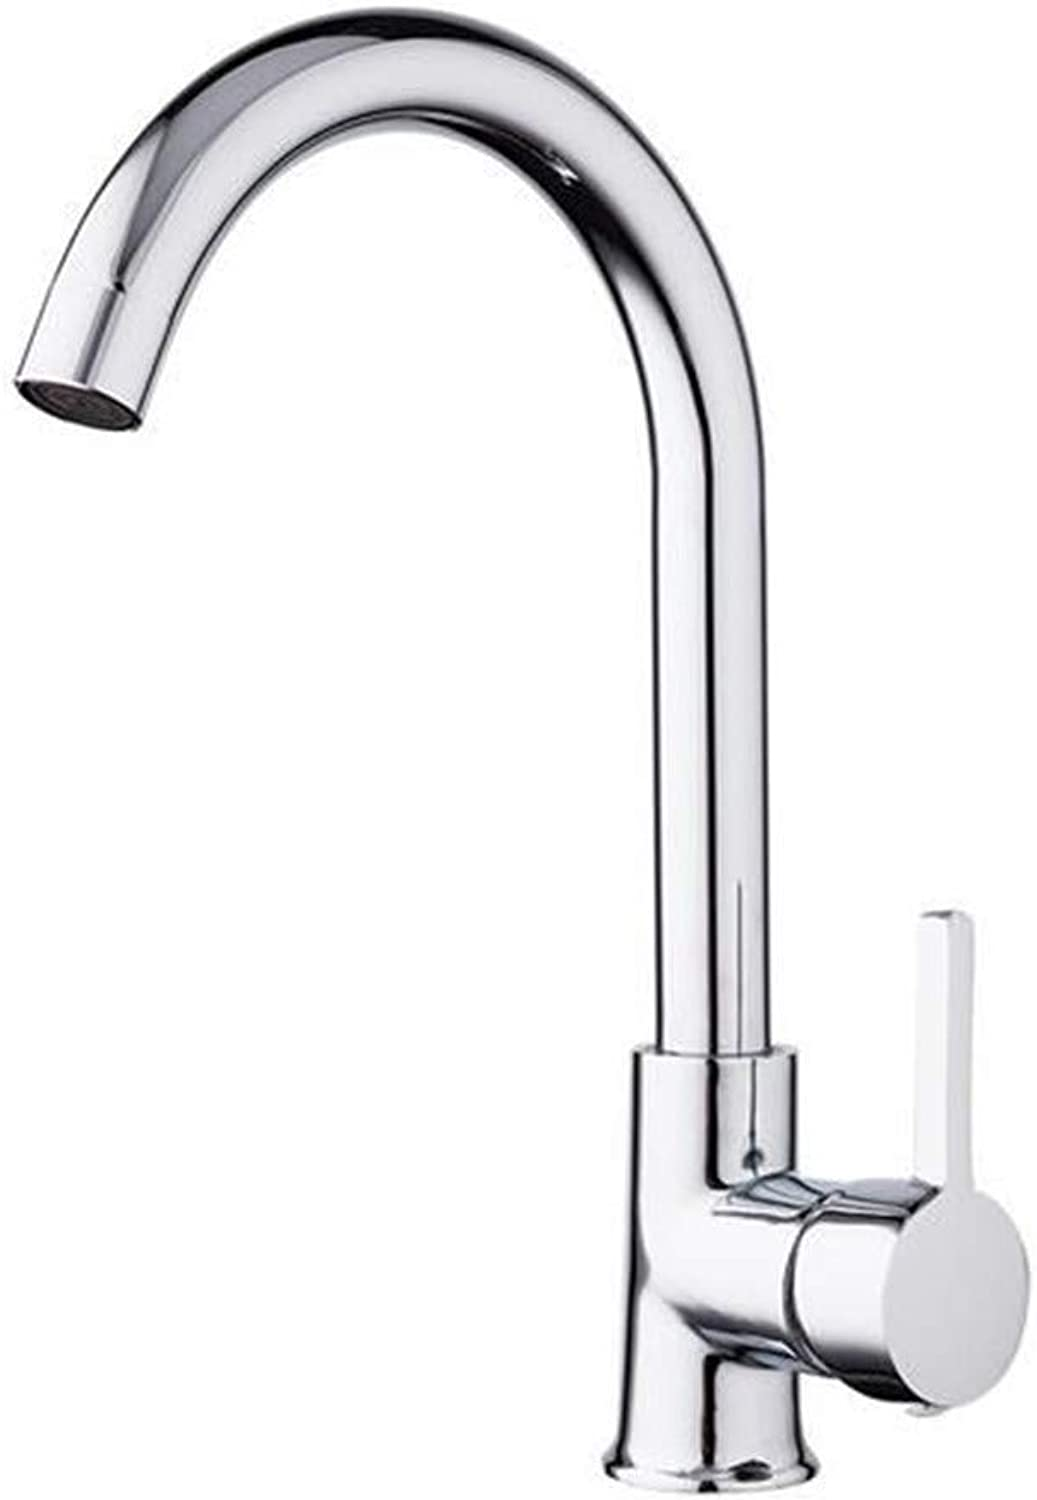 Brass Kitchen Modern Kitchen Faucet Mixer Cold and Hot Kitchen Tap Single Hole Water Tap Zinc Alloy